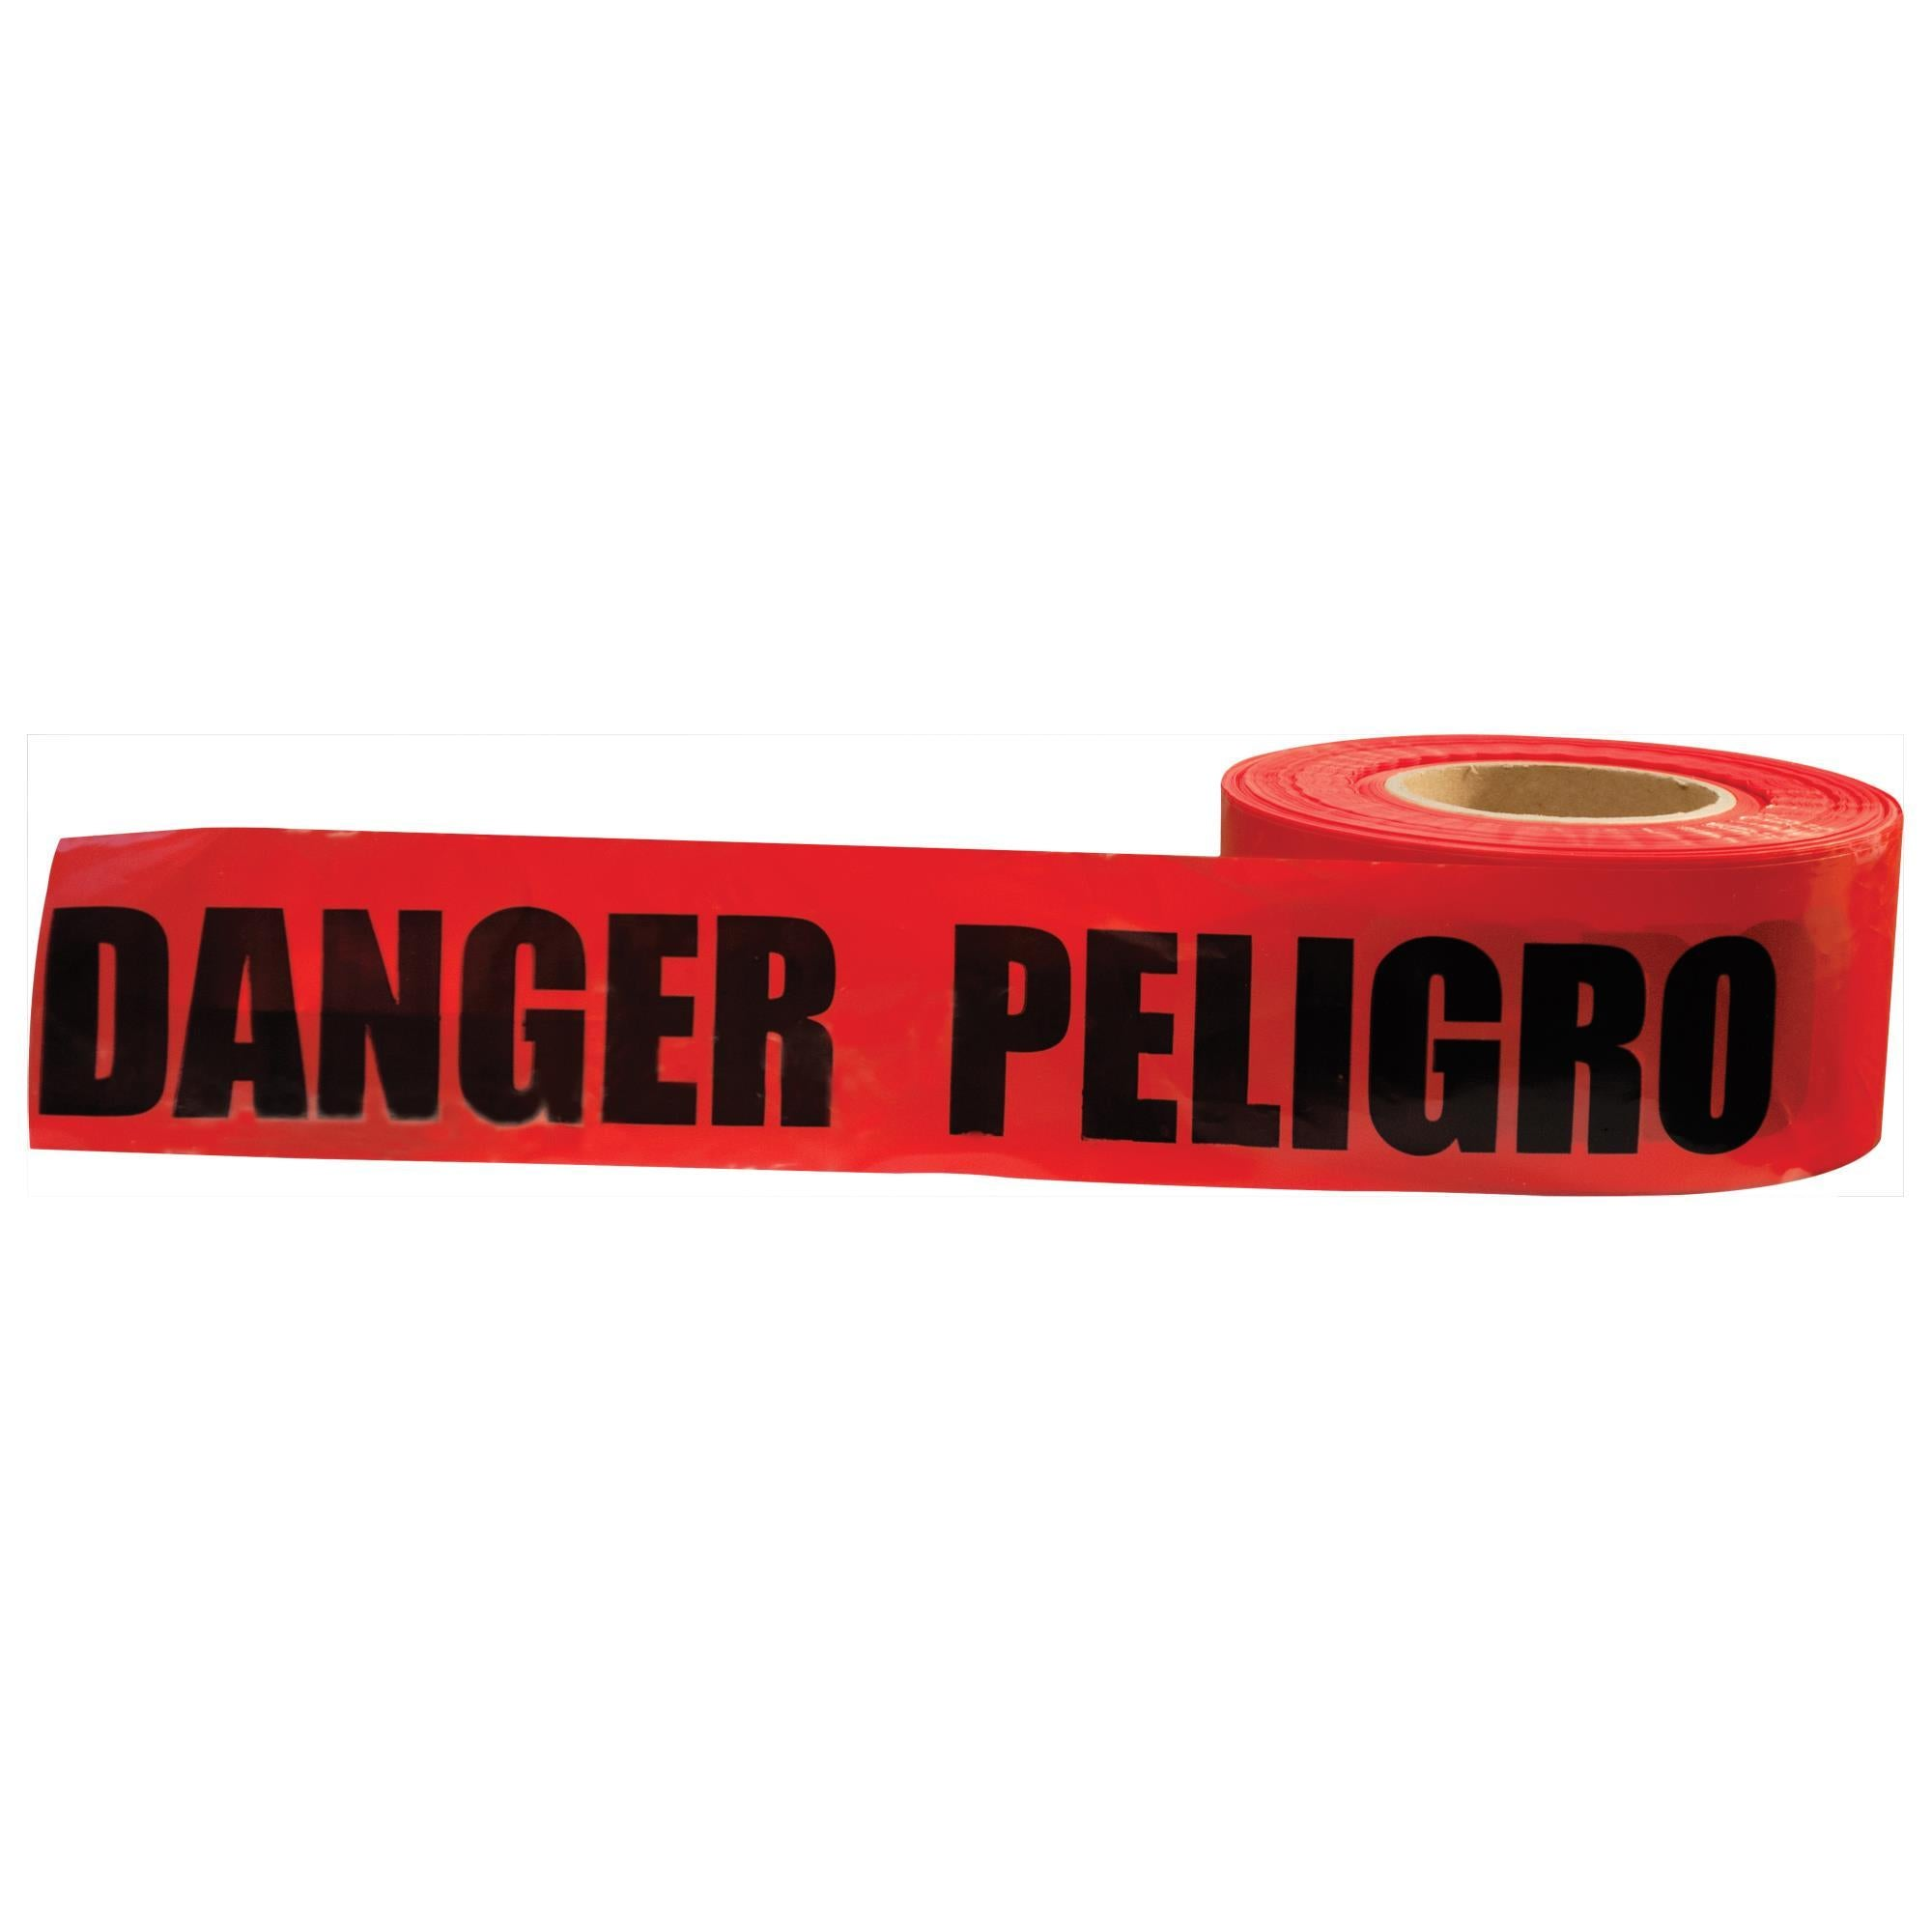 13753 Danger/Peligro Tape (Sold by Case of 10 rolls)